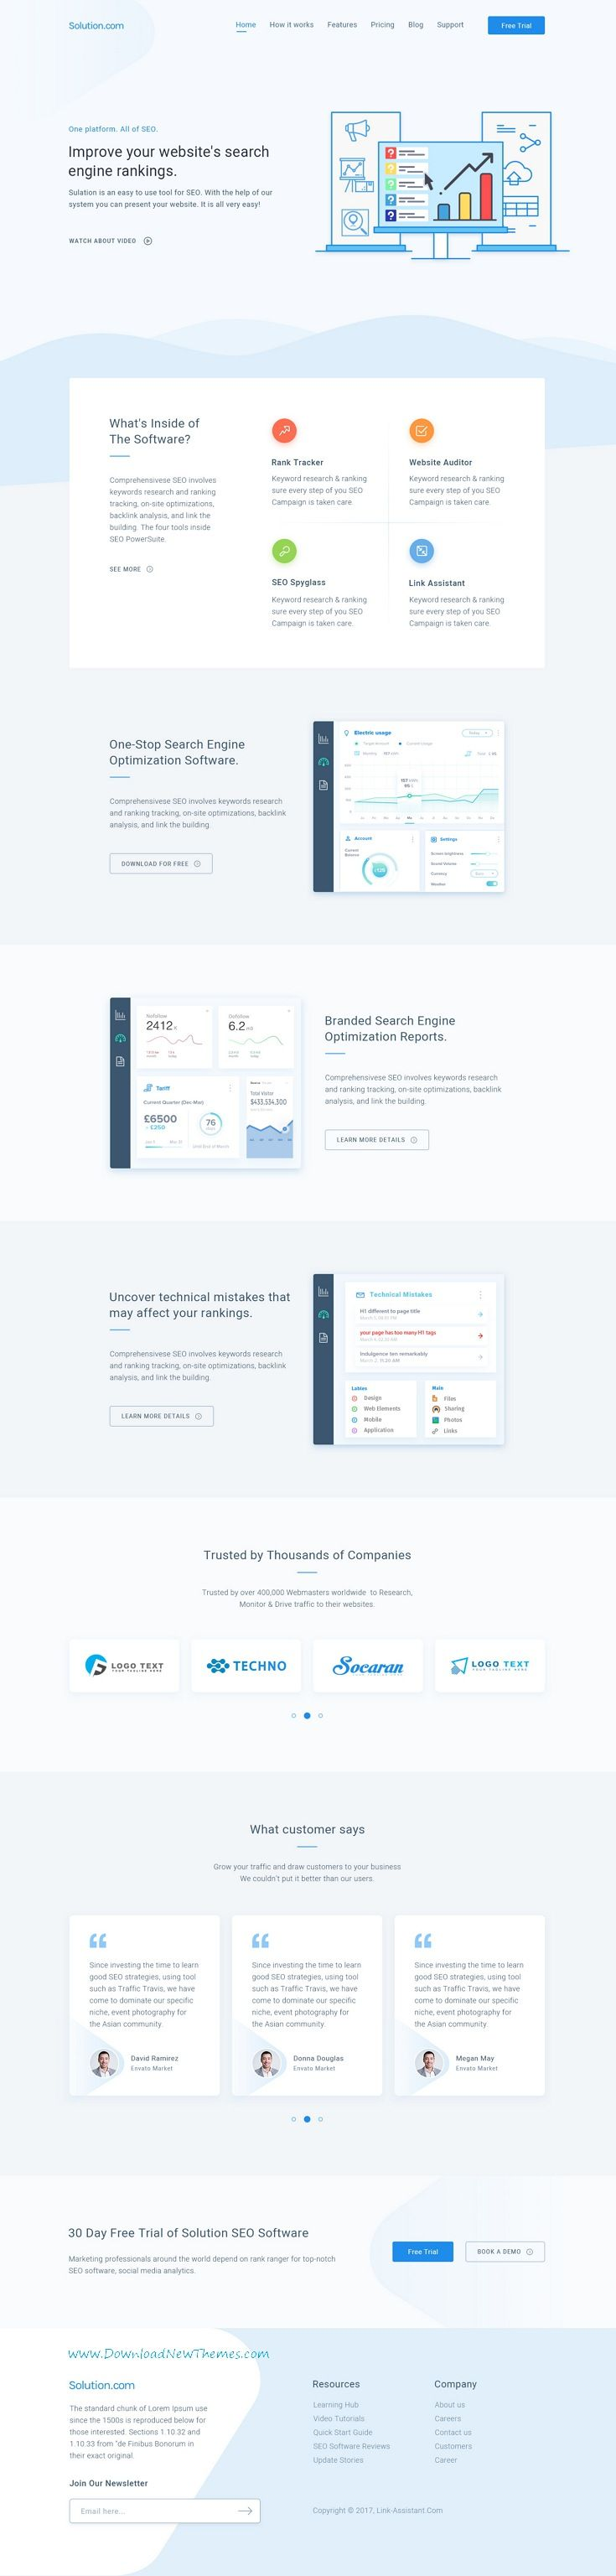 Spring Software App Saas Product Showcase Landing Page Inspiracao